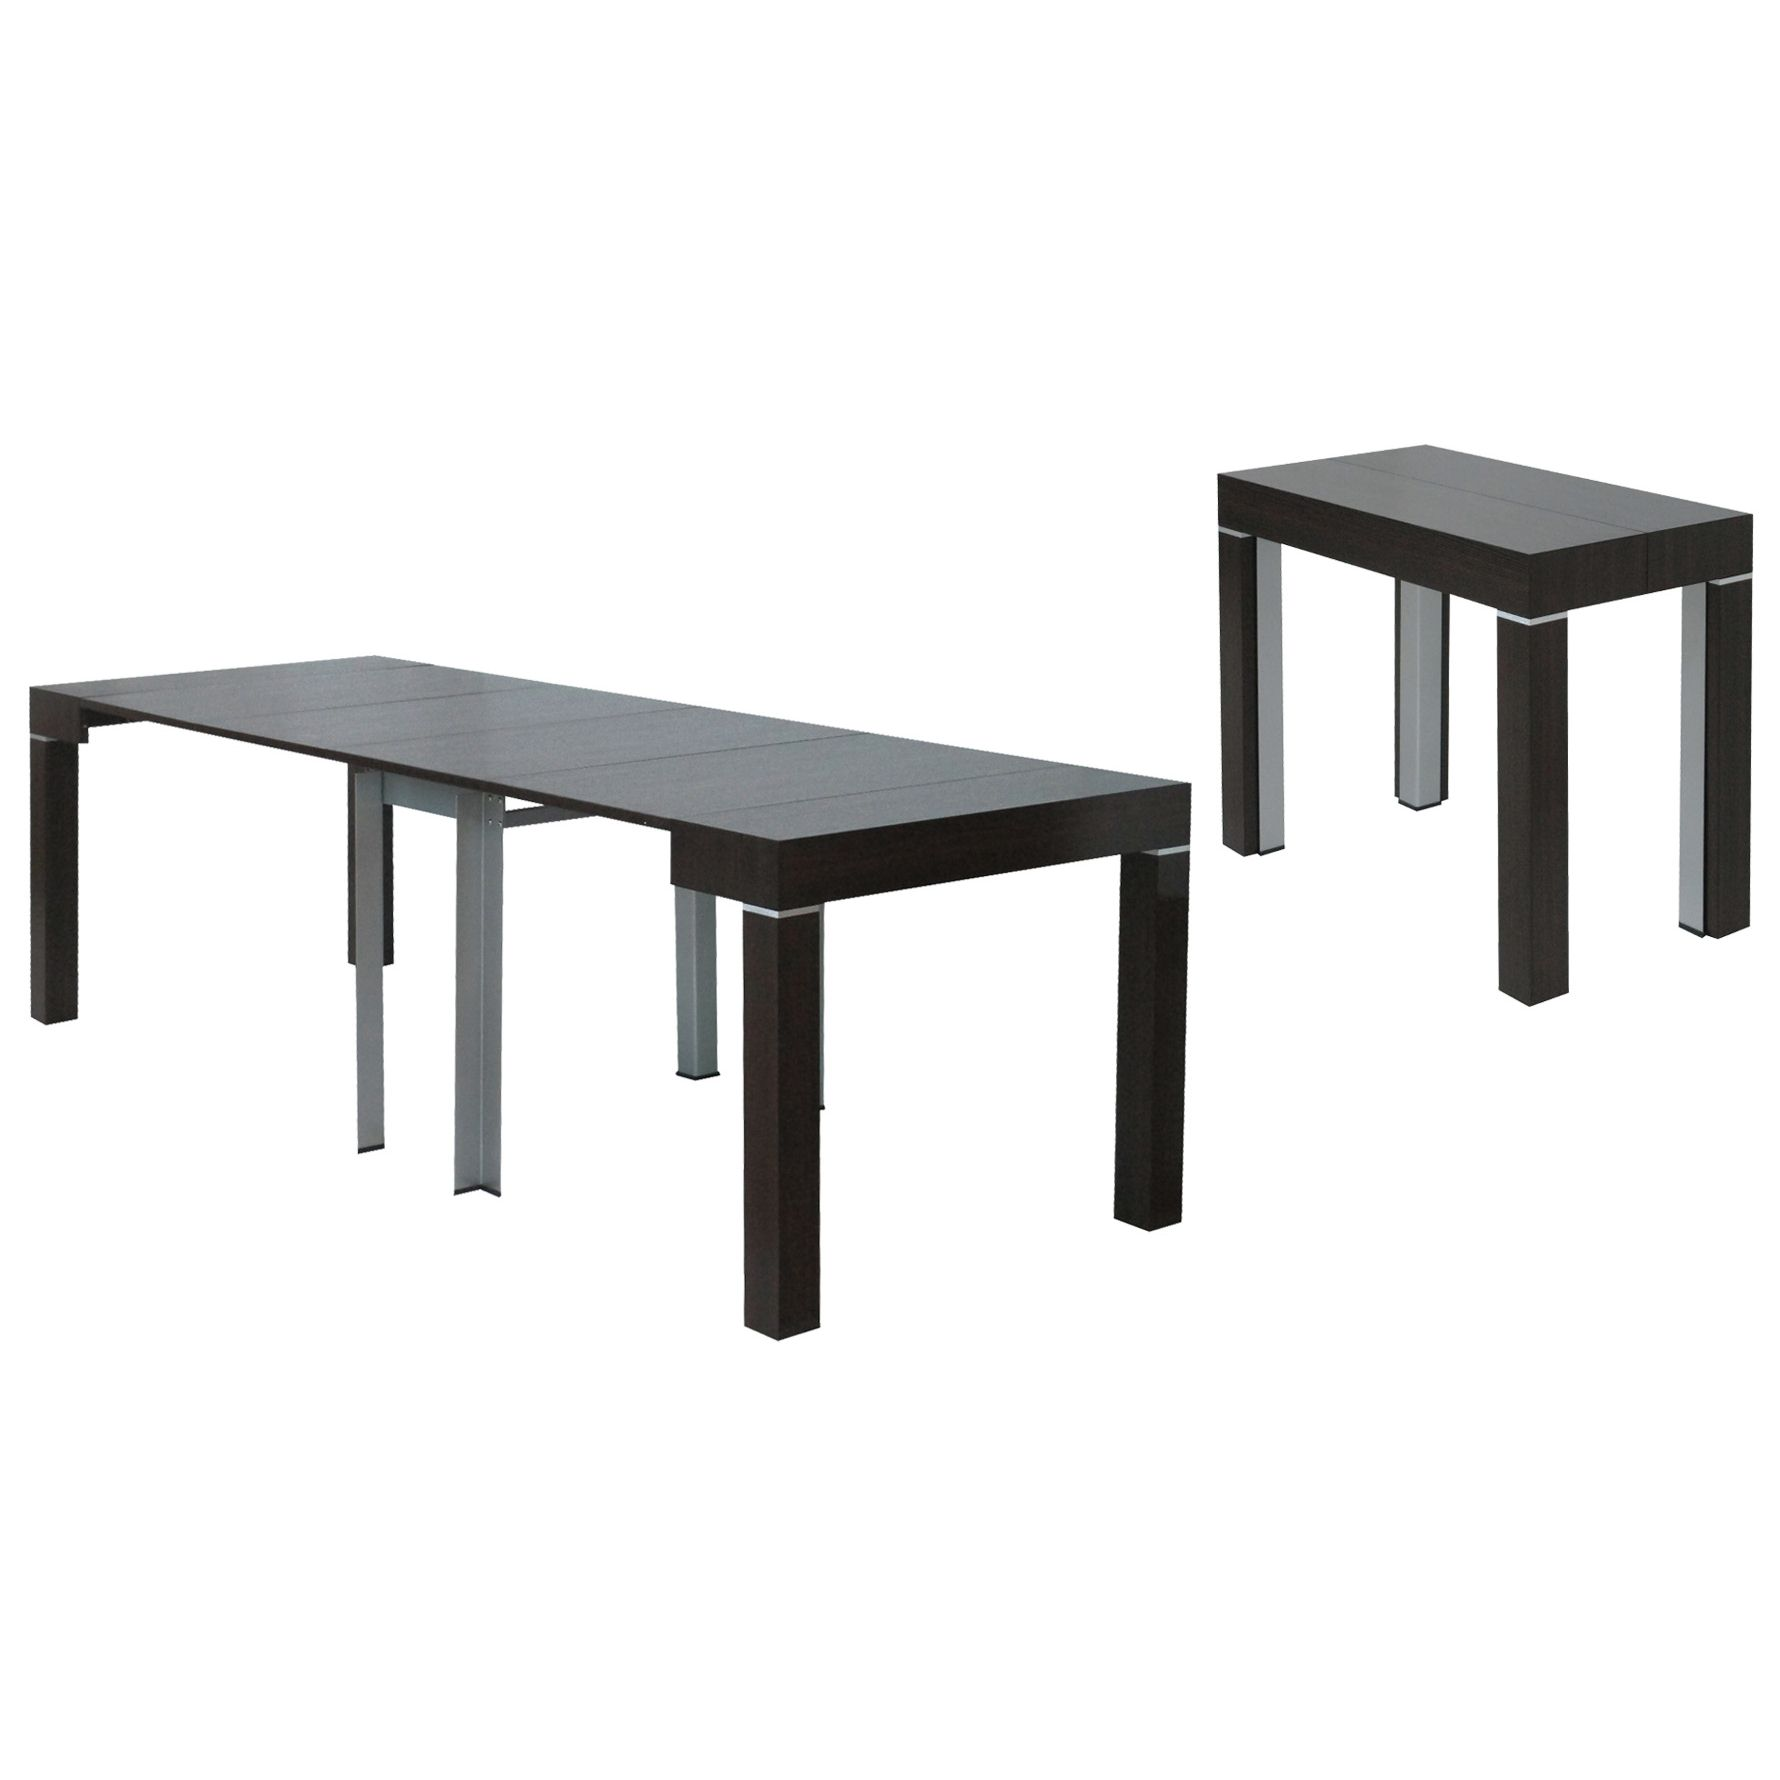 Deco in paris table console extensible wenge avec 4 for Table extensible avec rangement